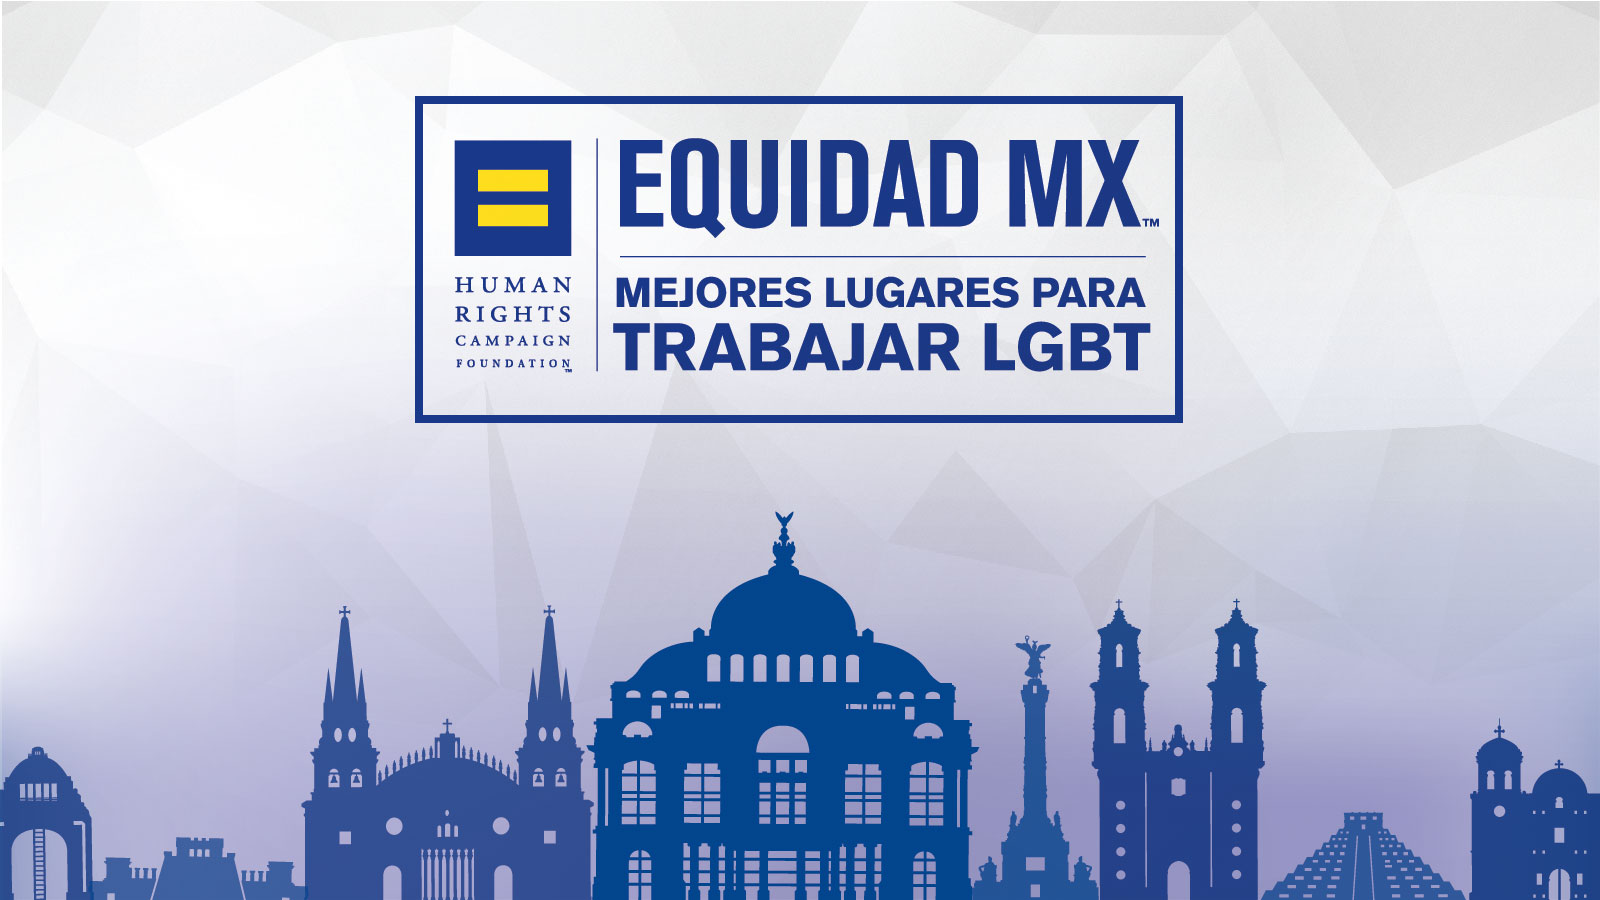 HRC Equidad MX Report Recognizes 32 LGBT-Inclusive Workplaces in Mexico